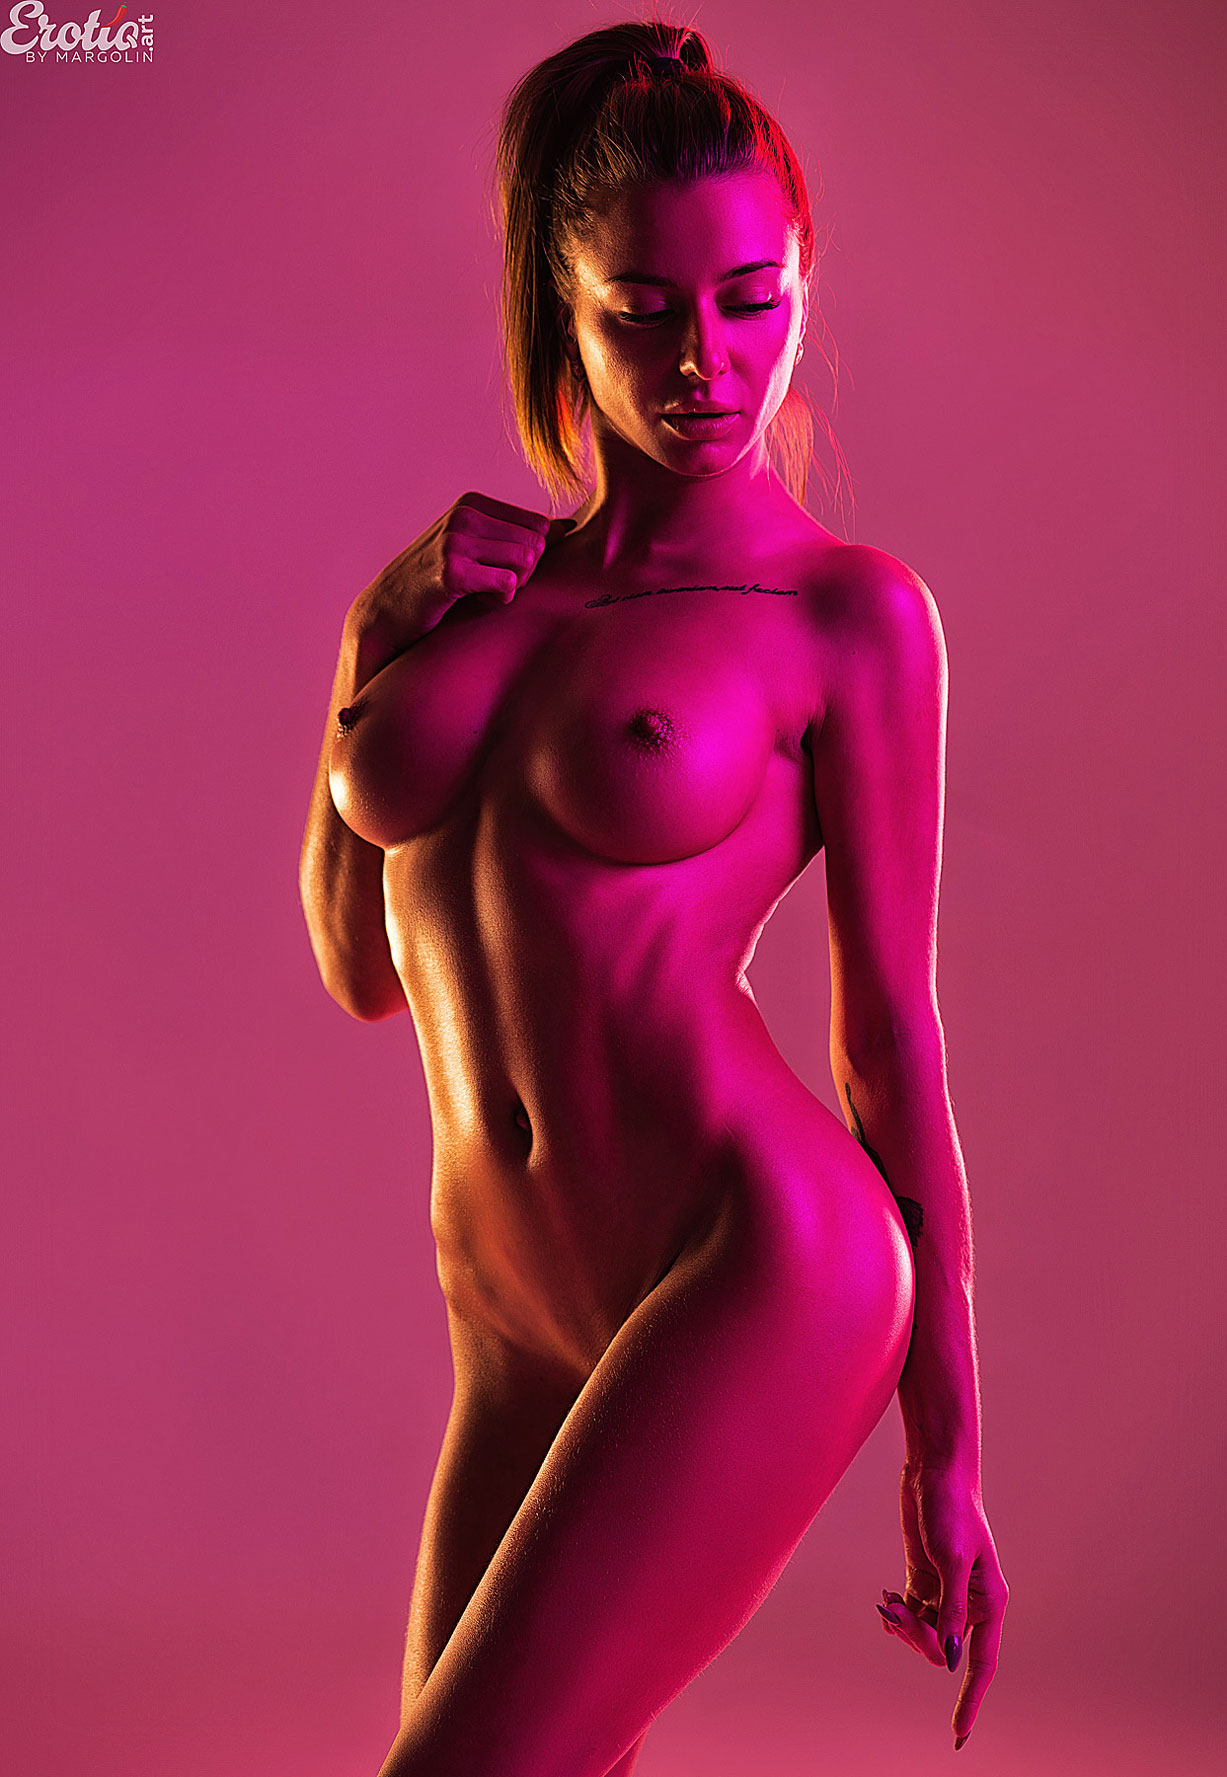 Sandra Wellness nude by Alexander Margolin